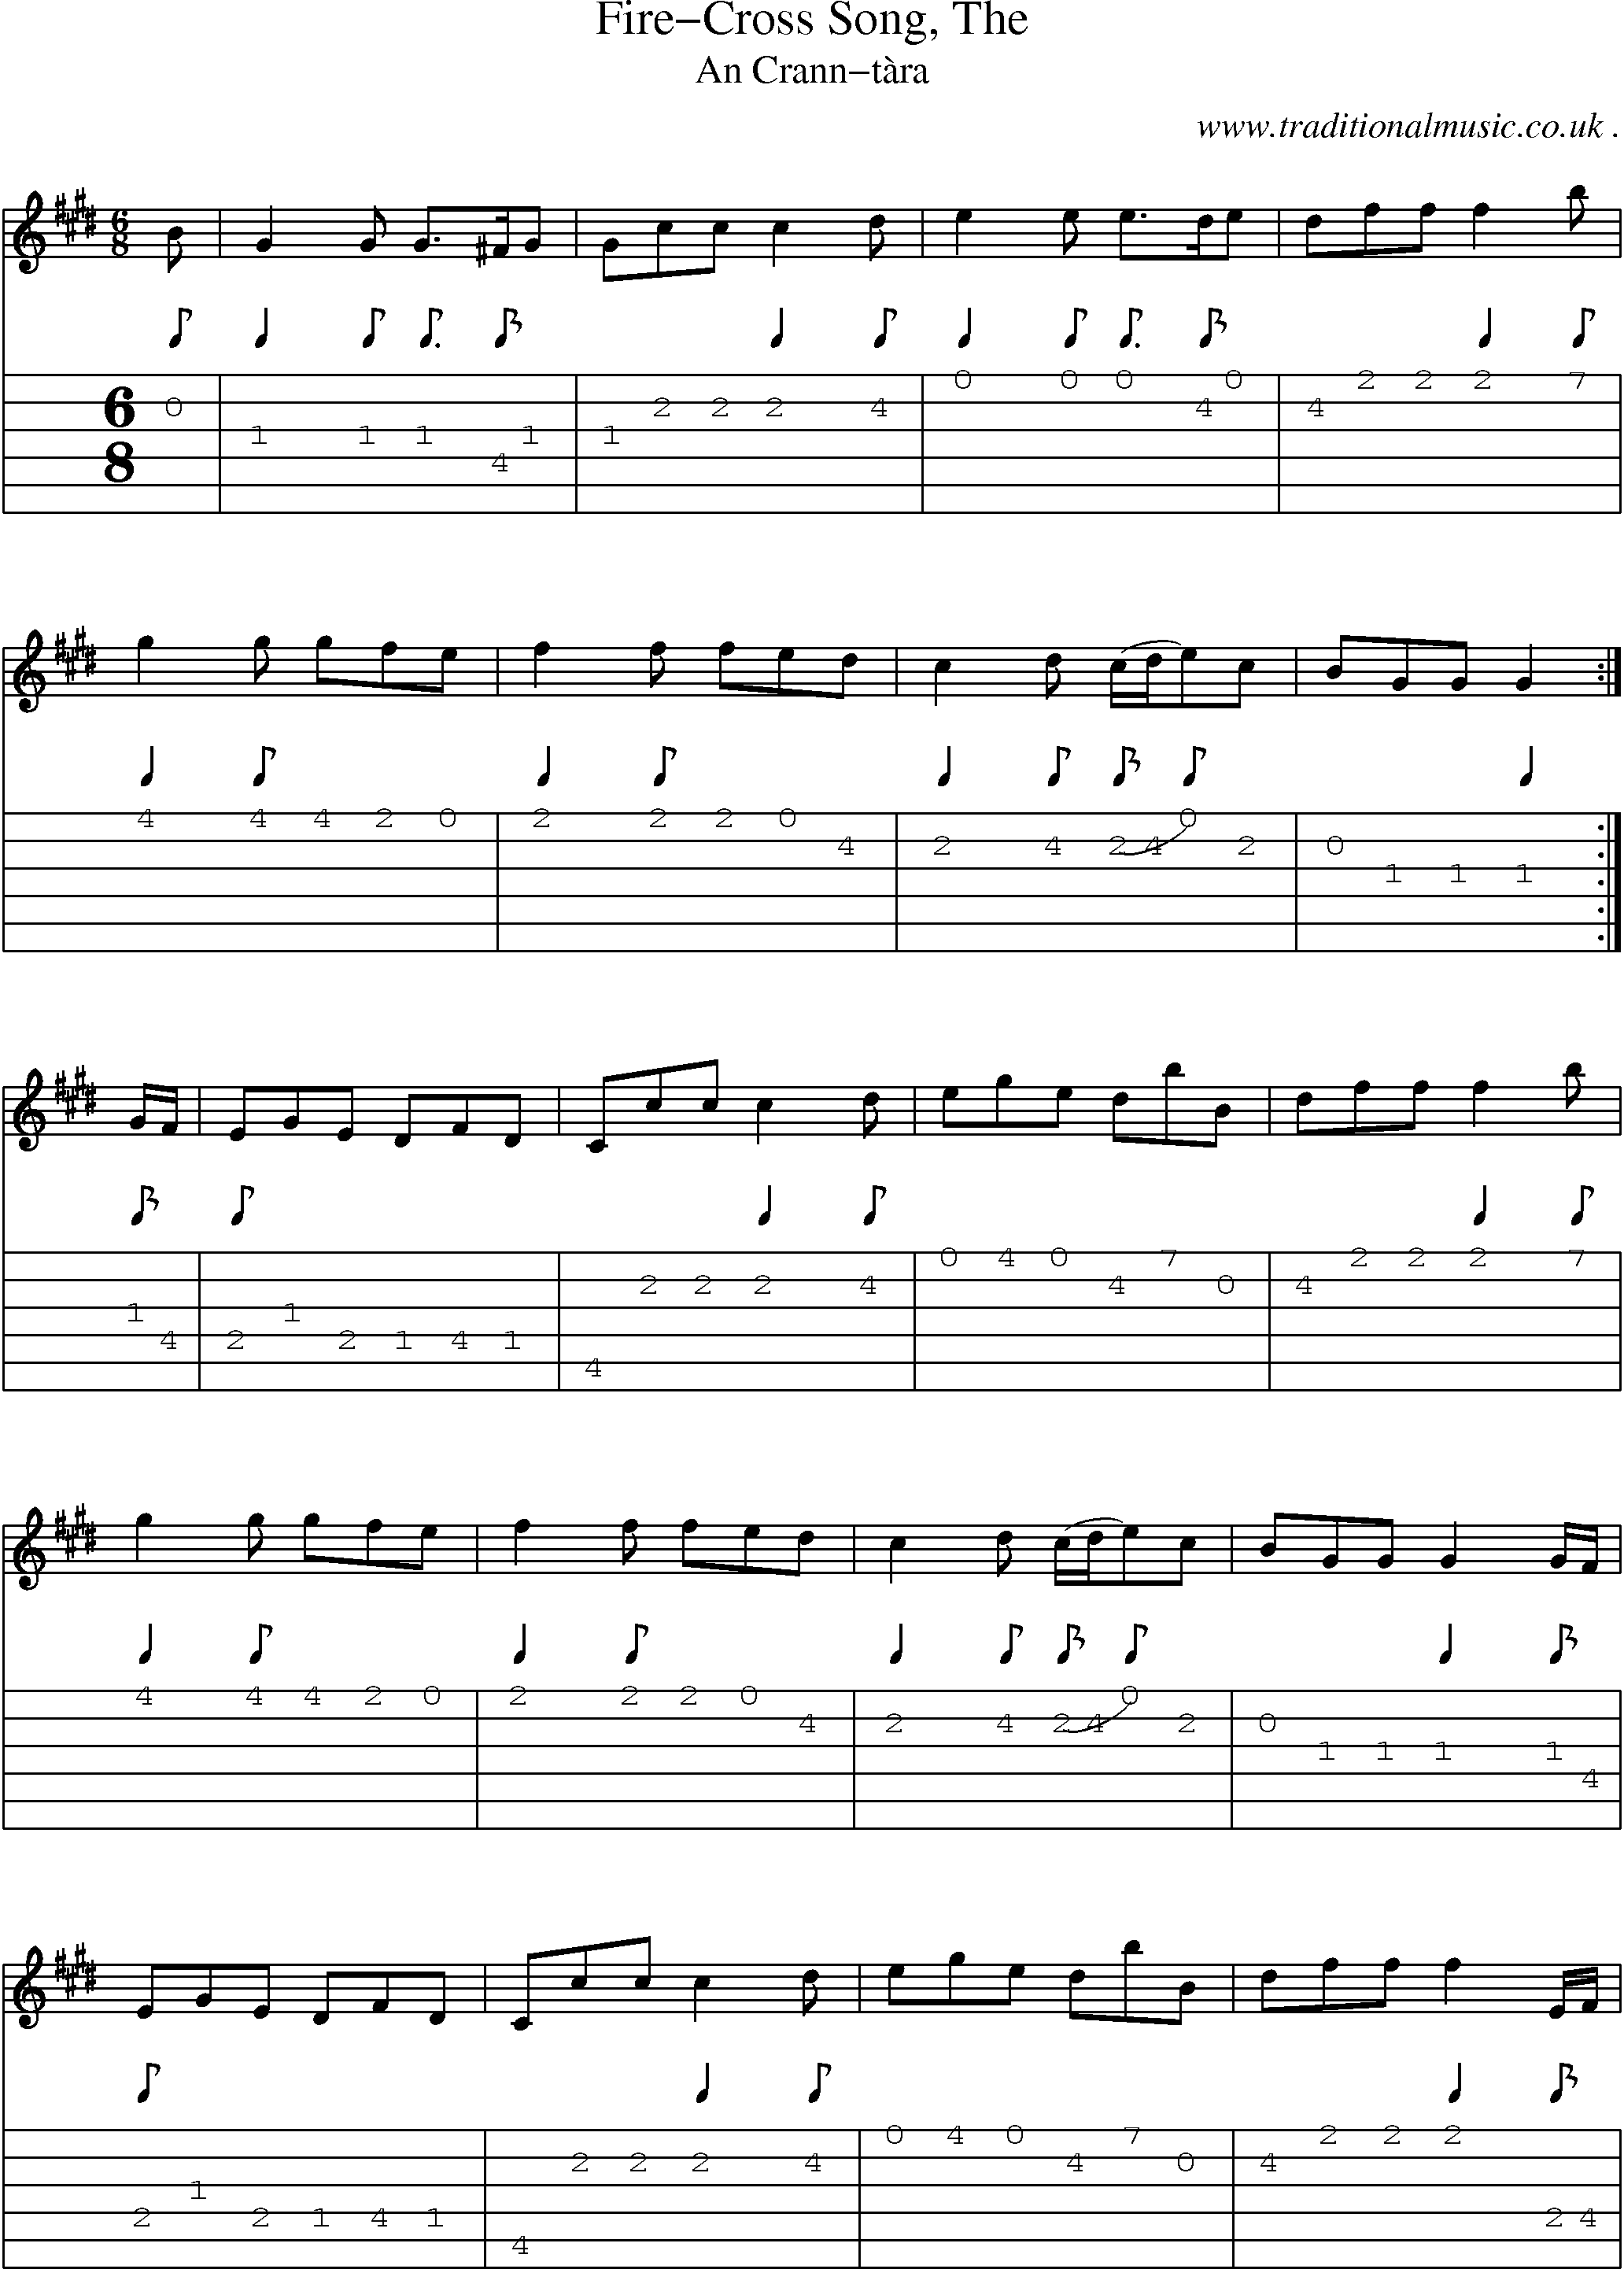 Fire guitar chords image collections guitar chords examples scottish tune sheetmusic midi mp3 guitar chords tabs fire sheet music score chords and guitar tabs hexwebz Gallery